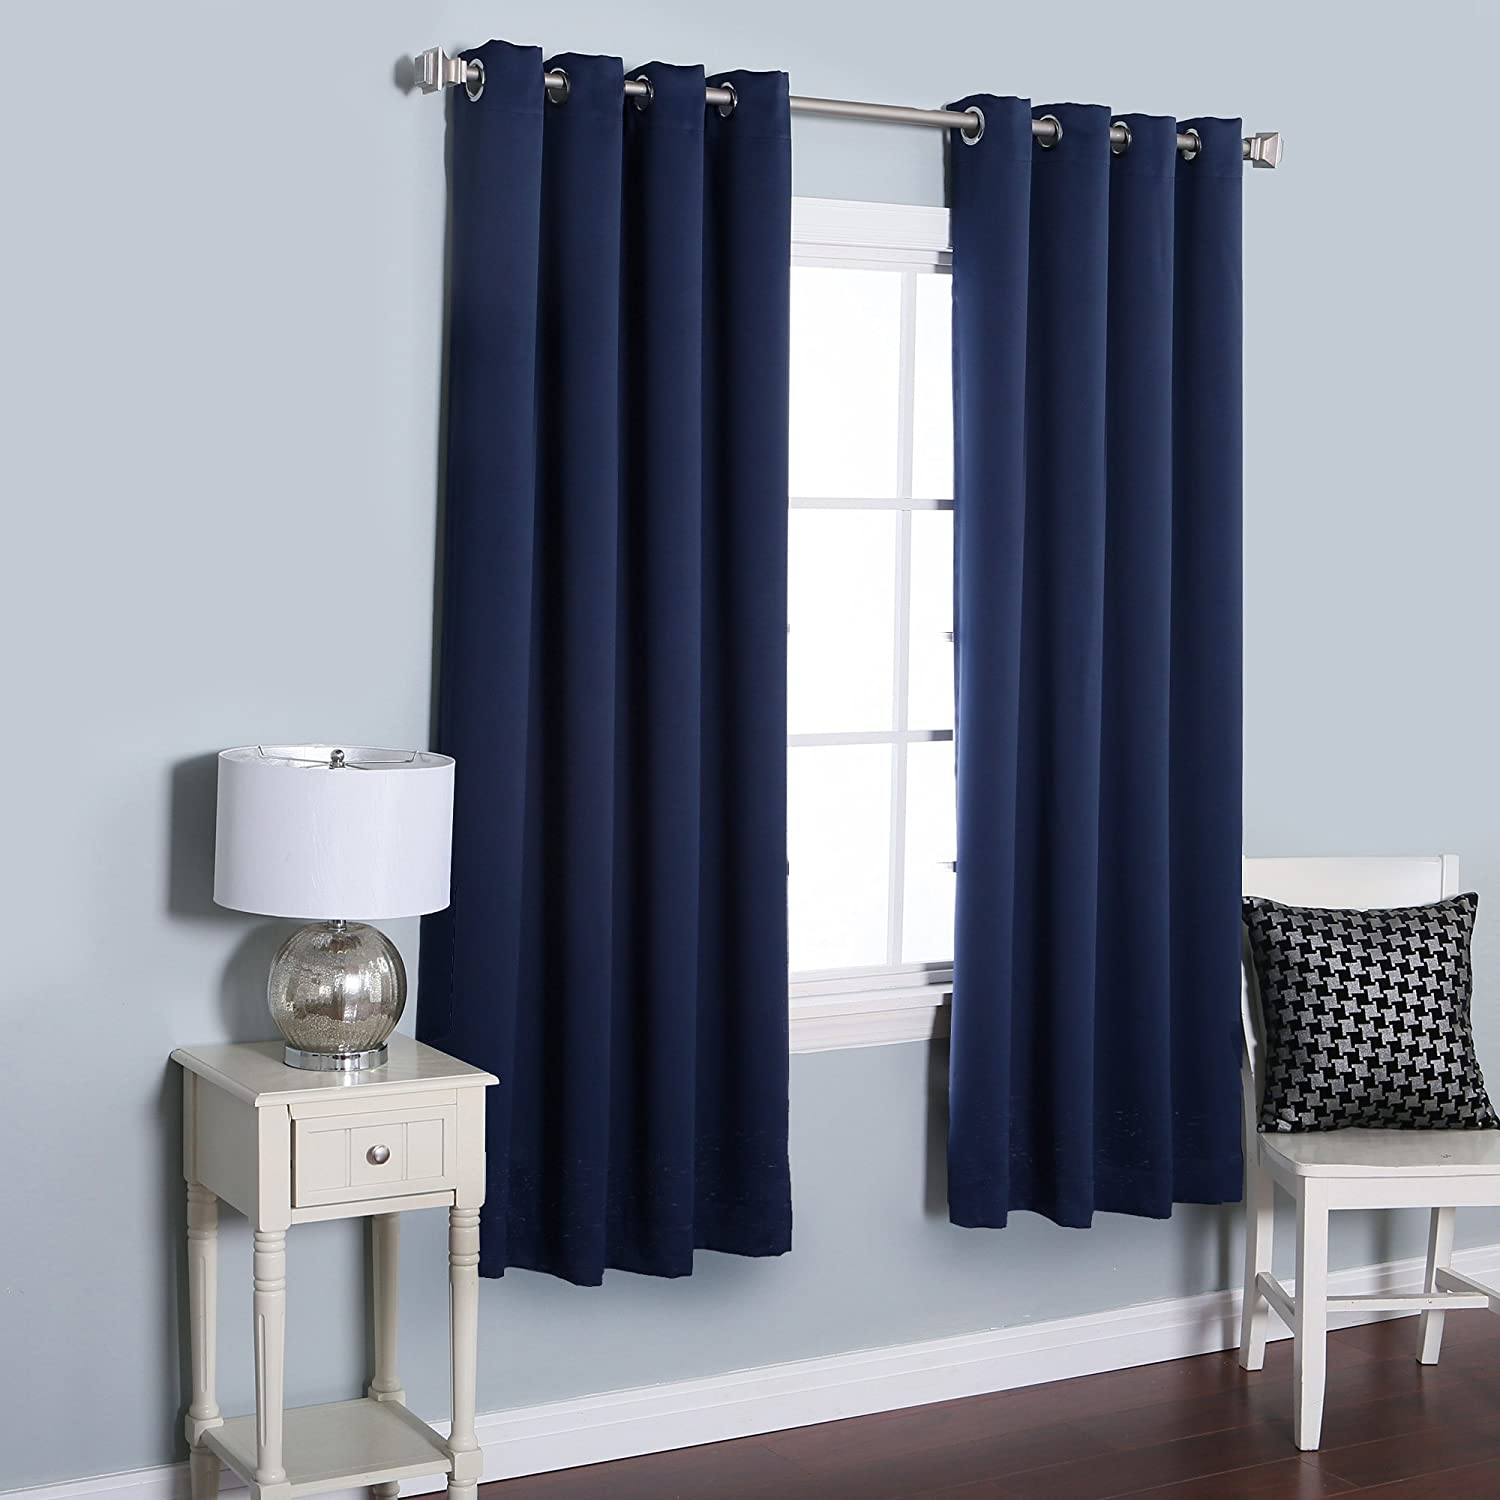 Blackout Thermal Curtains Sale Ease Bedding With Style